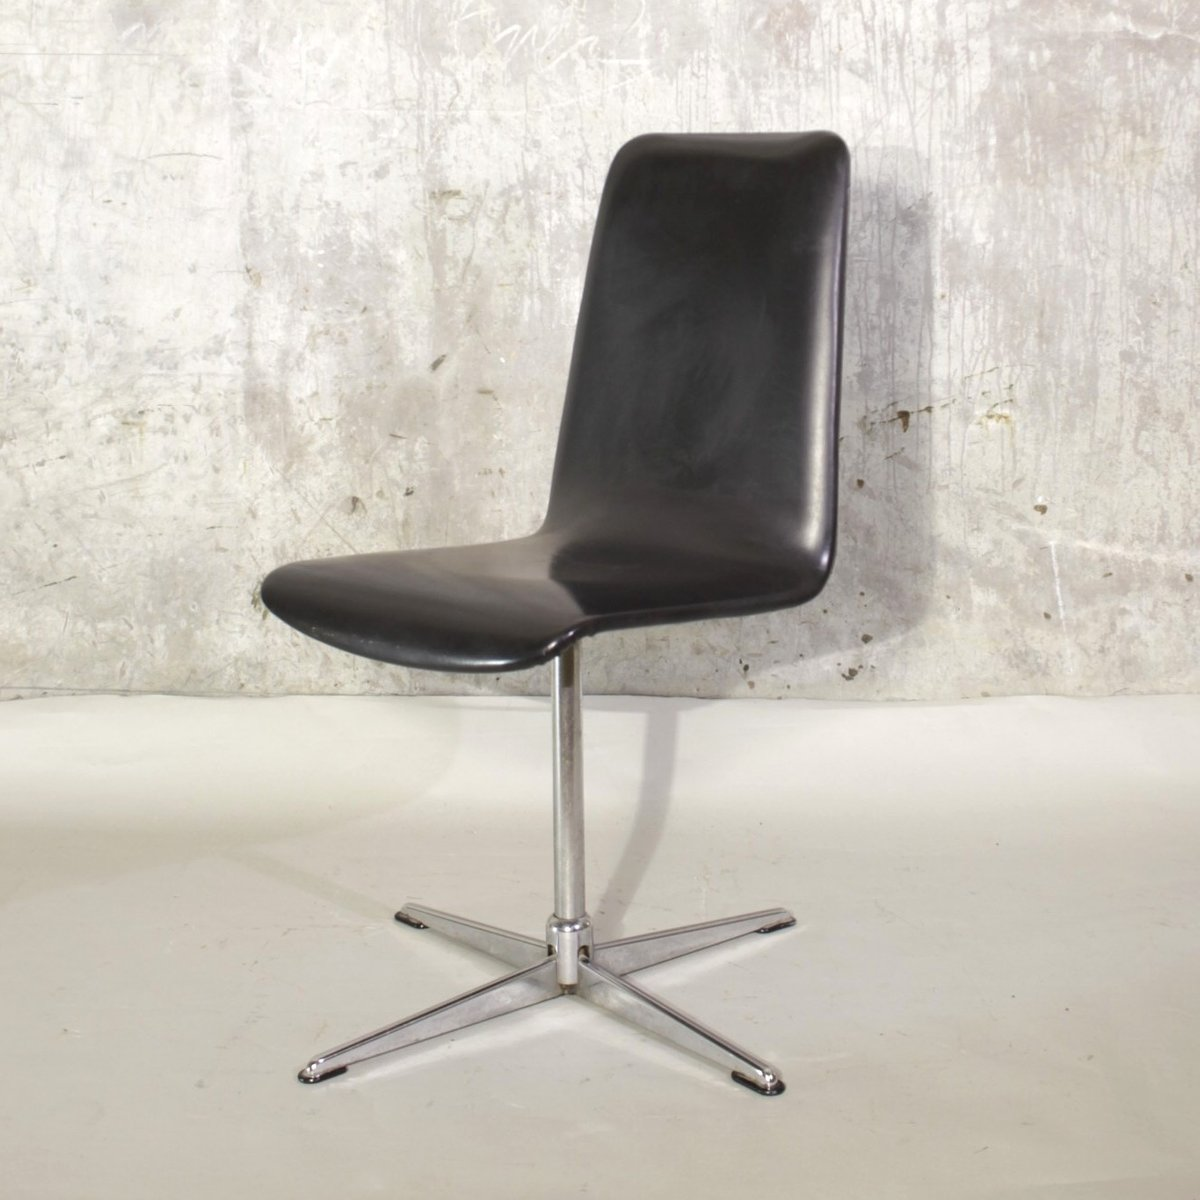 Vintage Swivel Chair With Chromed Foot